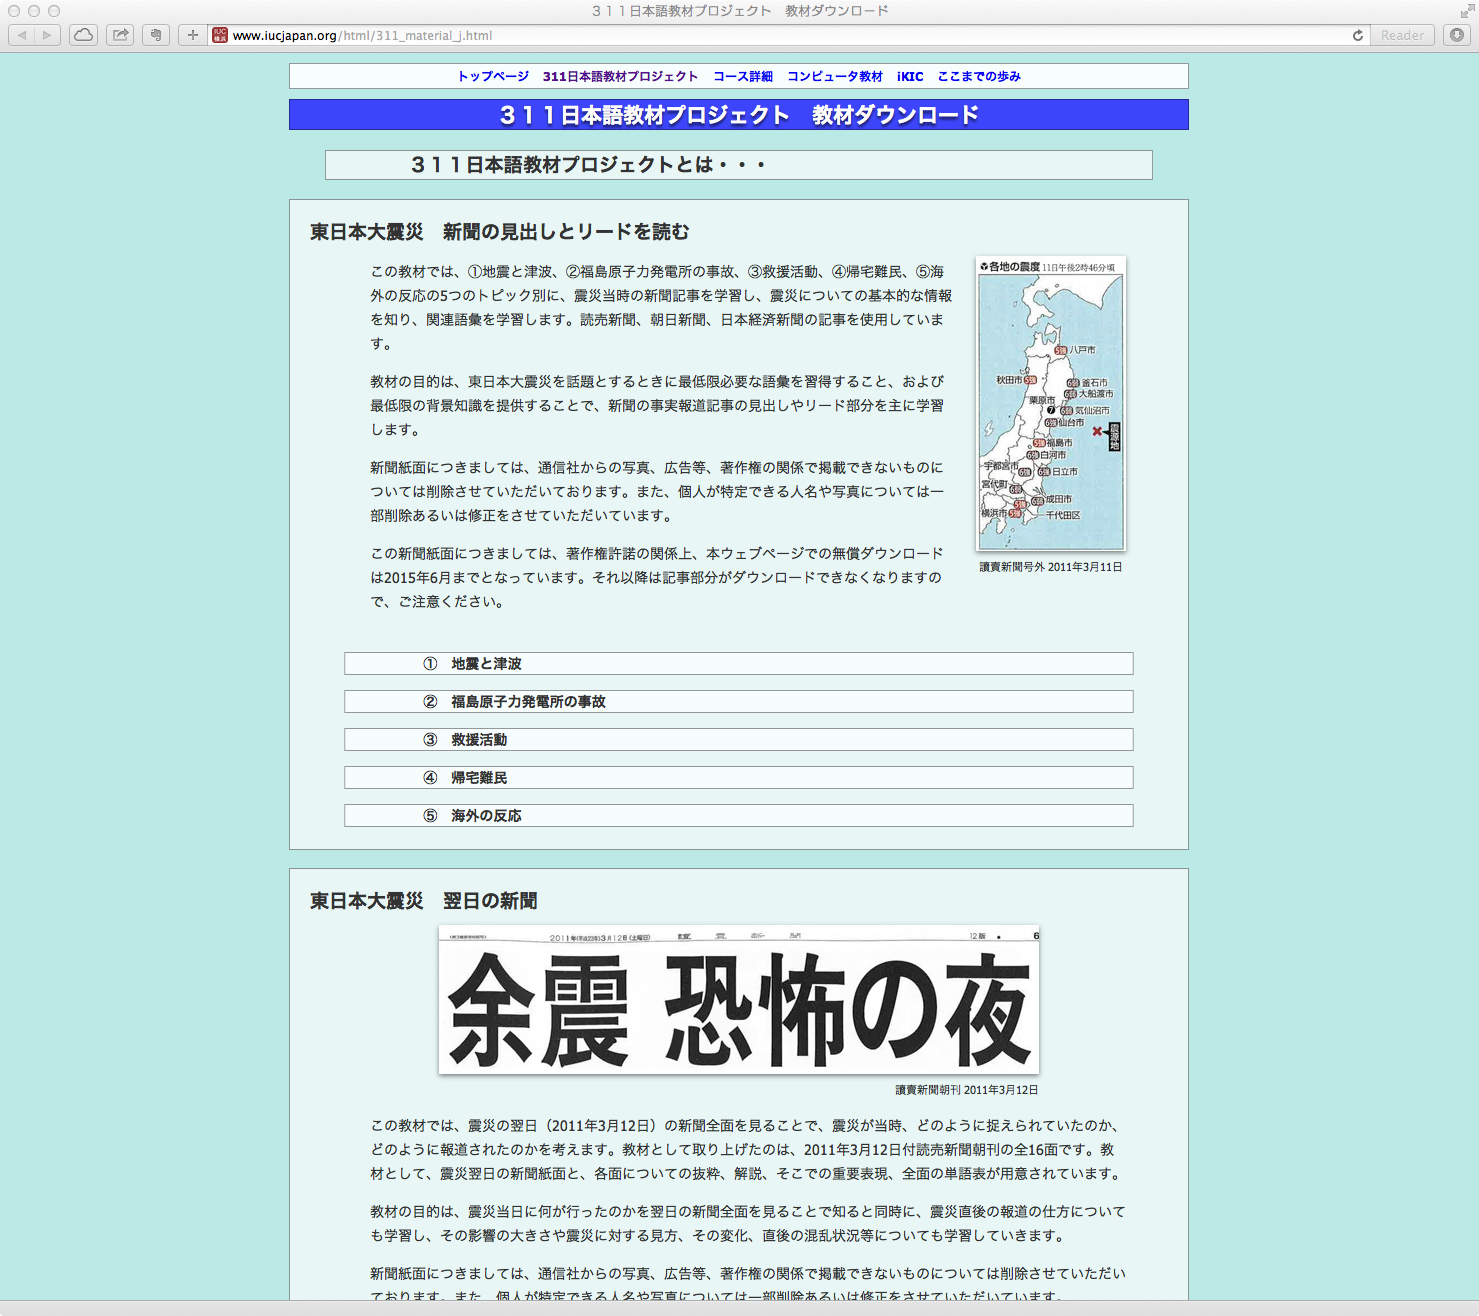 WEBSITE: The 3.11 Japanese Teaching Materials Project (Inter-University Center for Japanese Language Studies)